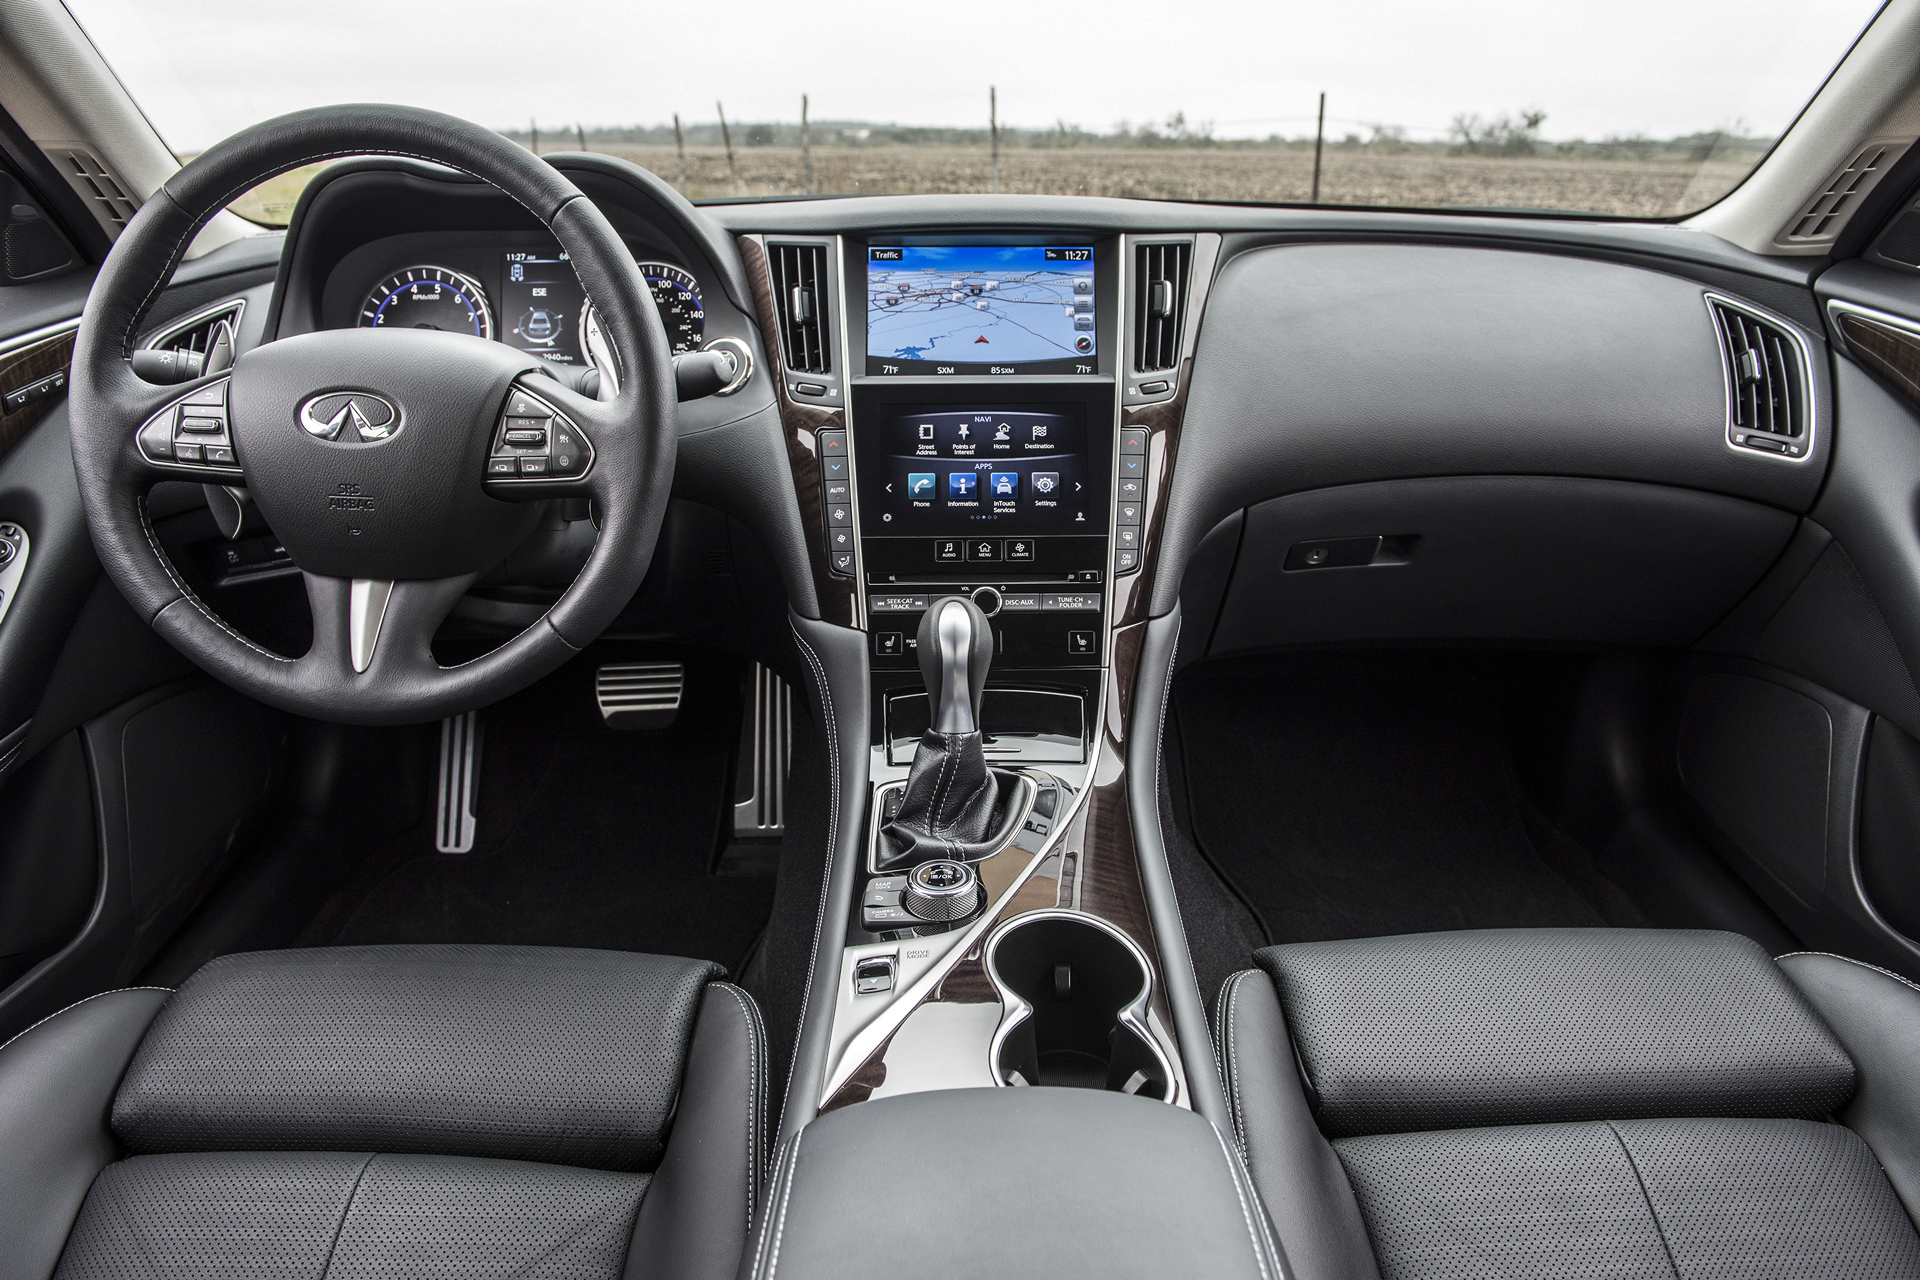 2016 Infiniti Q50 © Nissan Motor Co., Ltd.